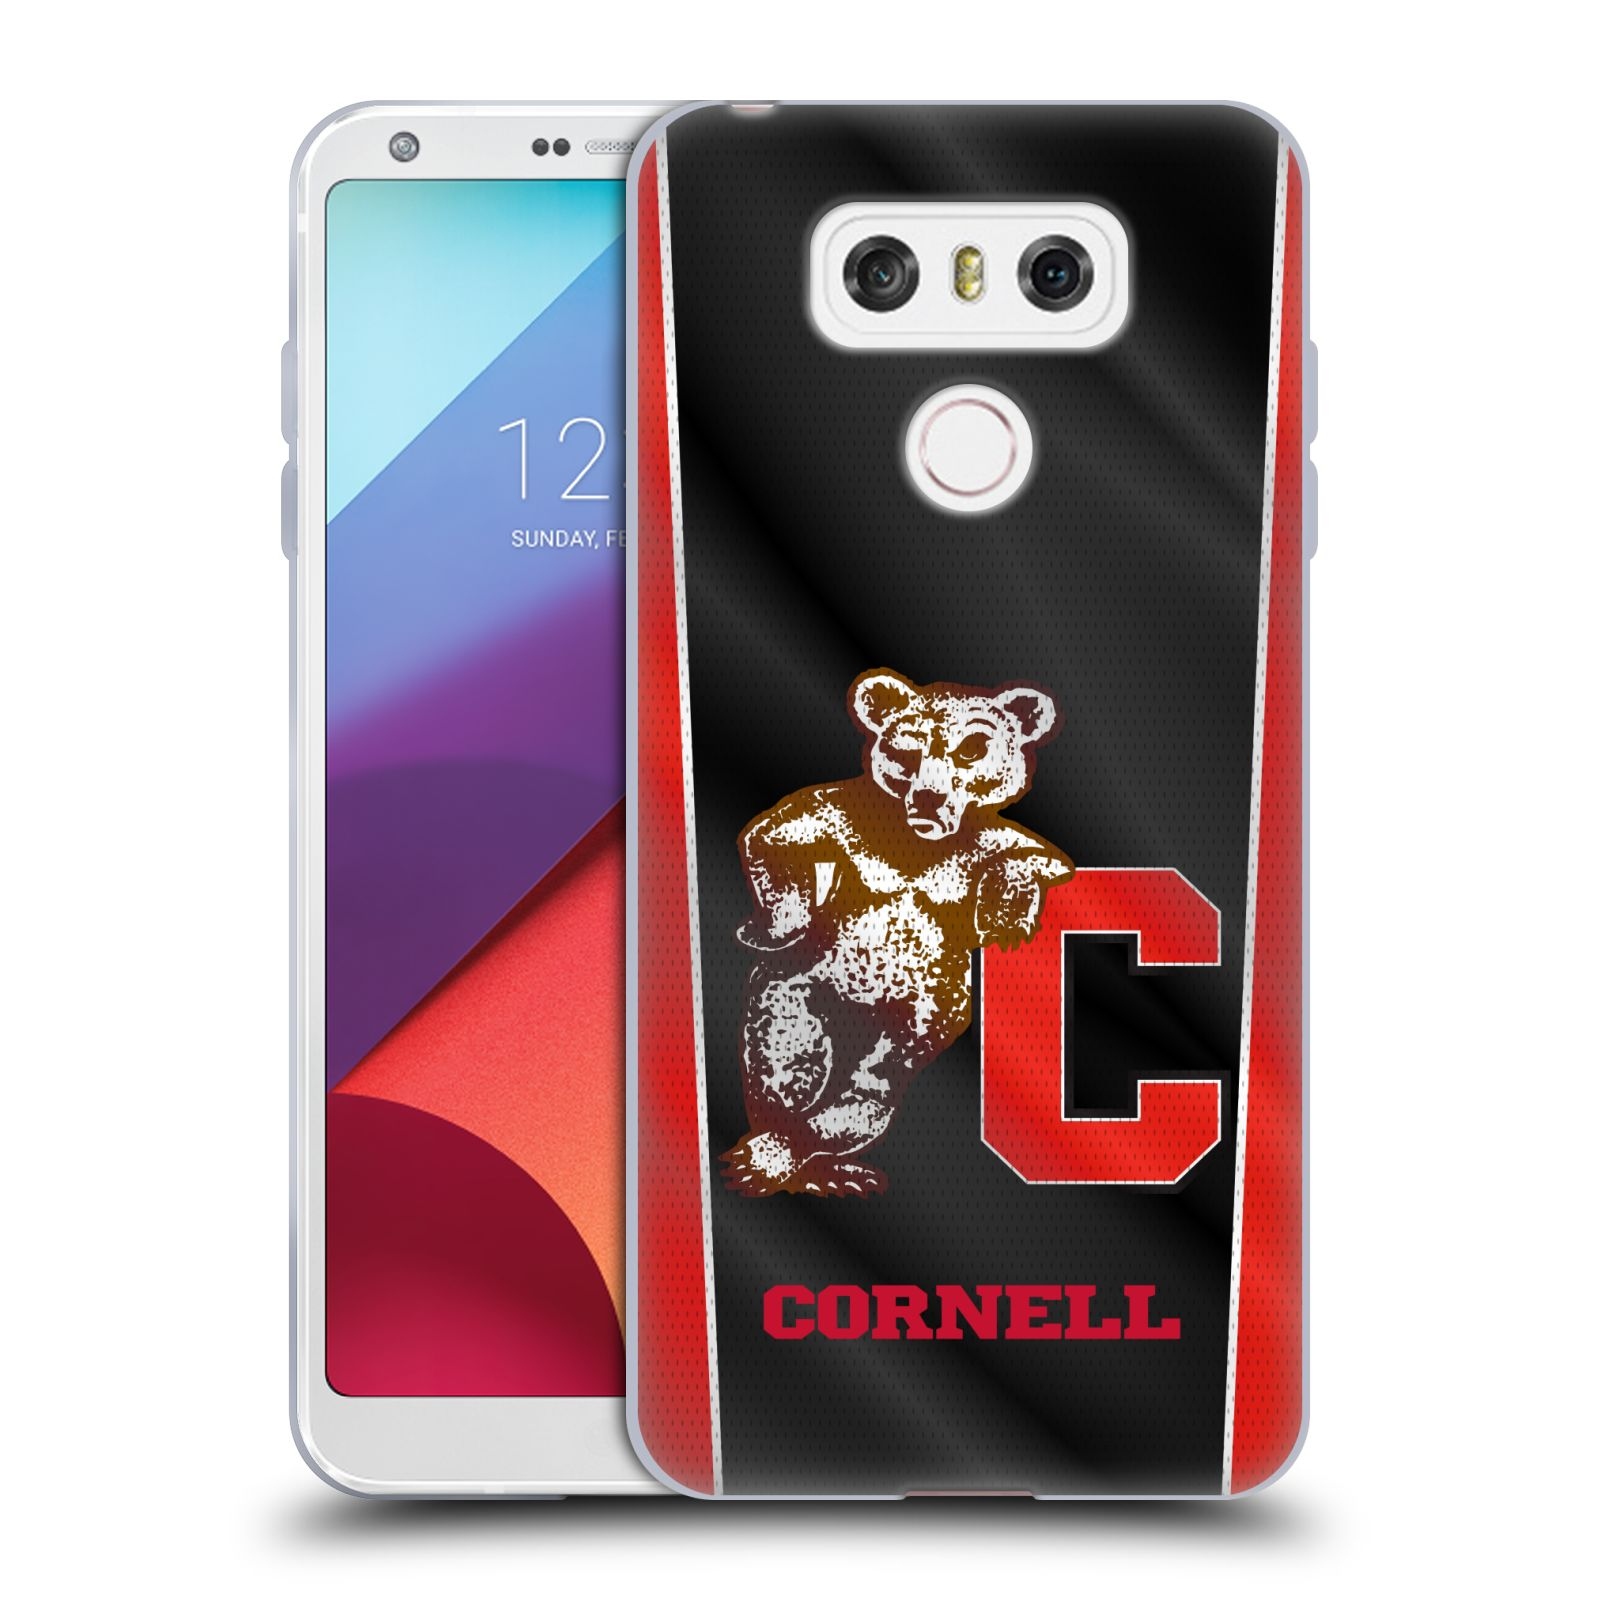 OFFICIAL-CORNELL-UNIVERSITY-SOFT-GEL-CASE-FOR-LG-PHONES-1